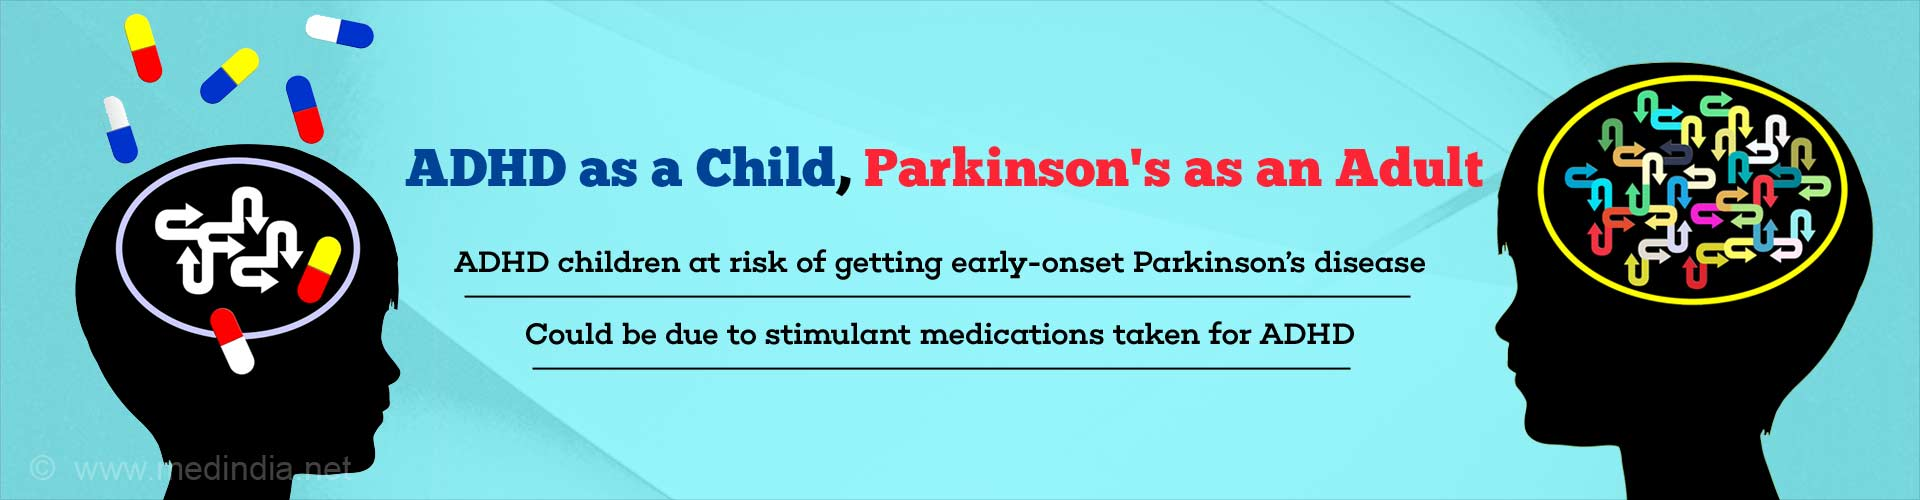 ADHD Children at Greater Risk of Developing Parkinson's Disease Early